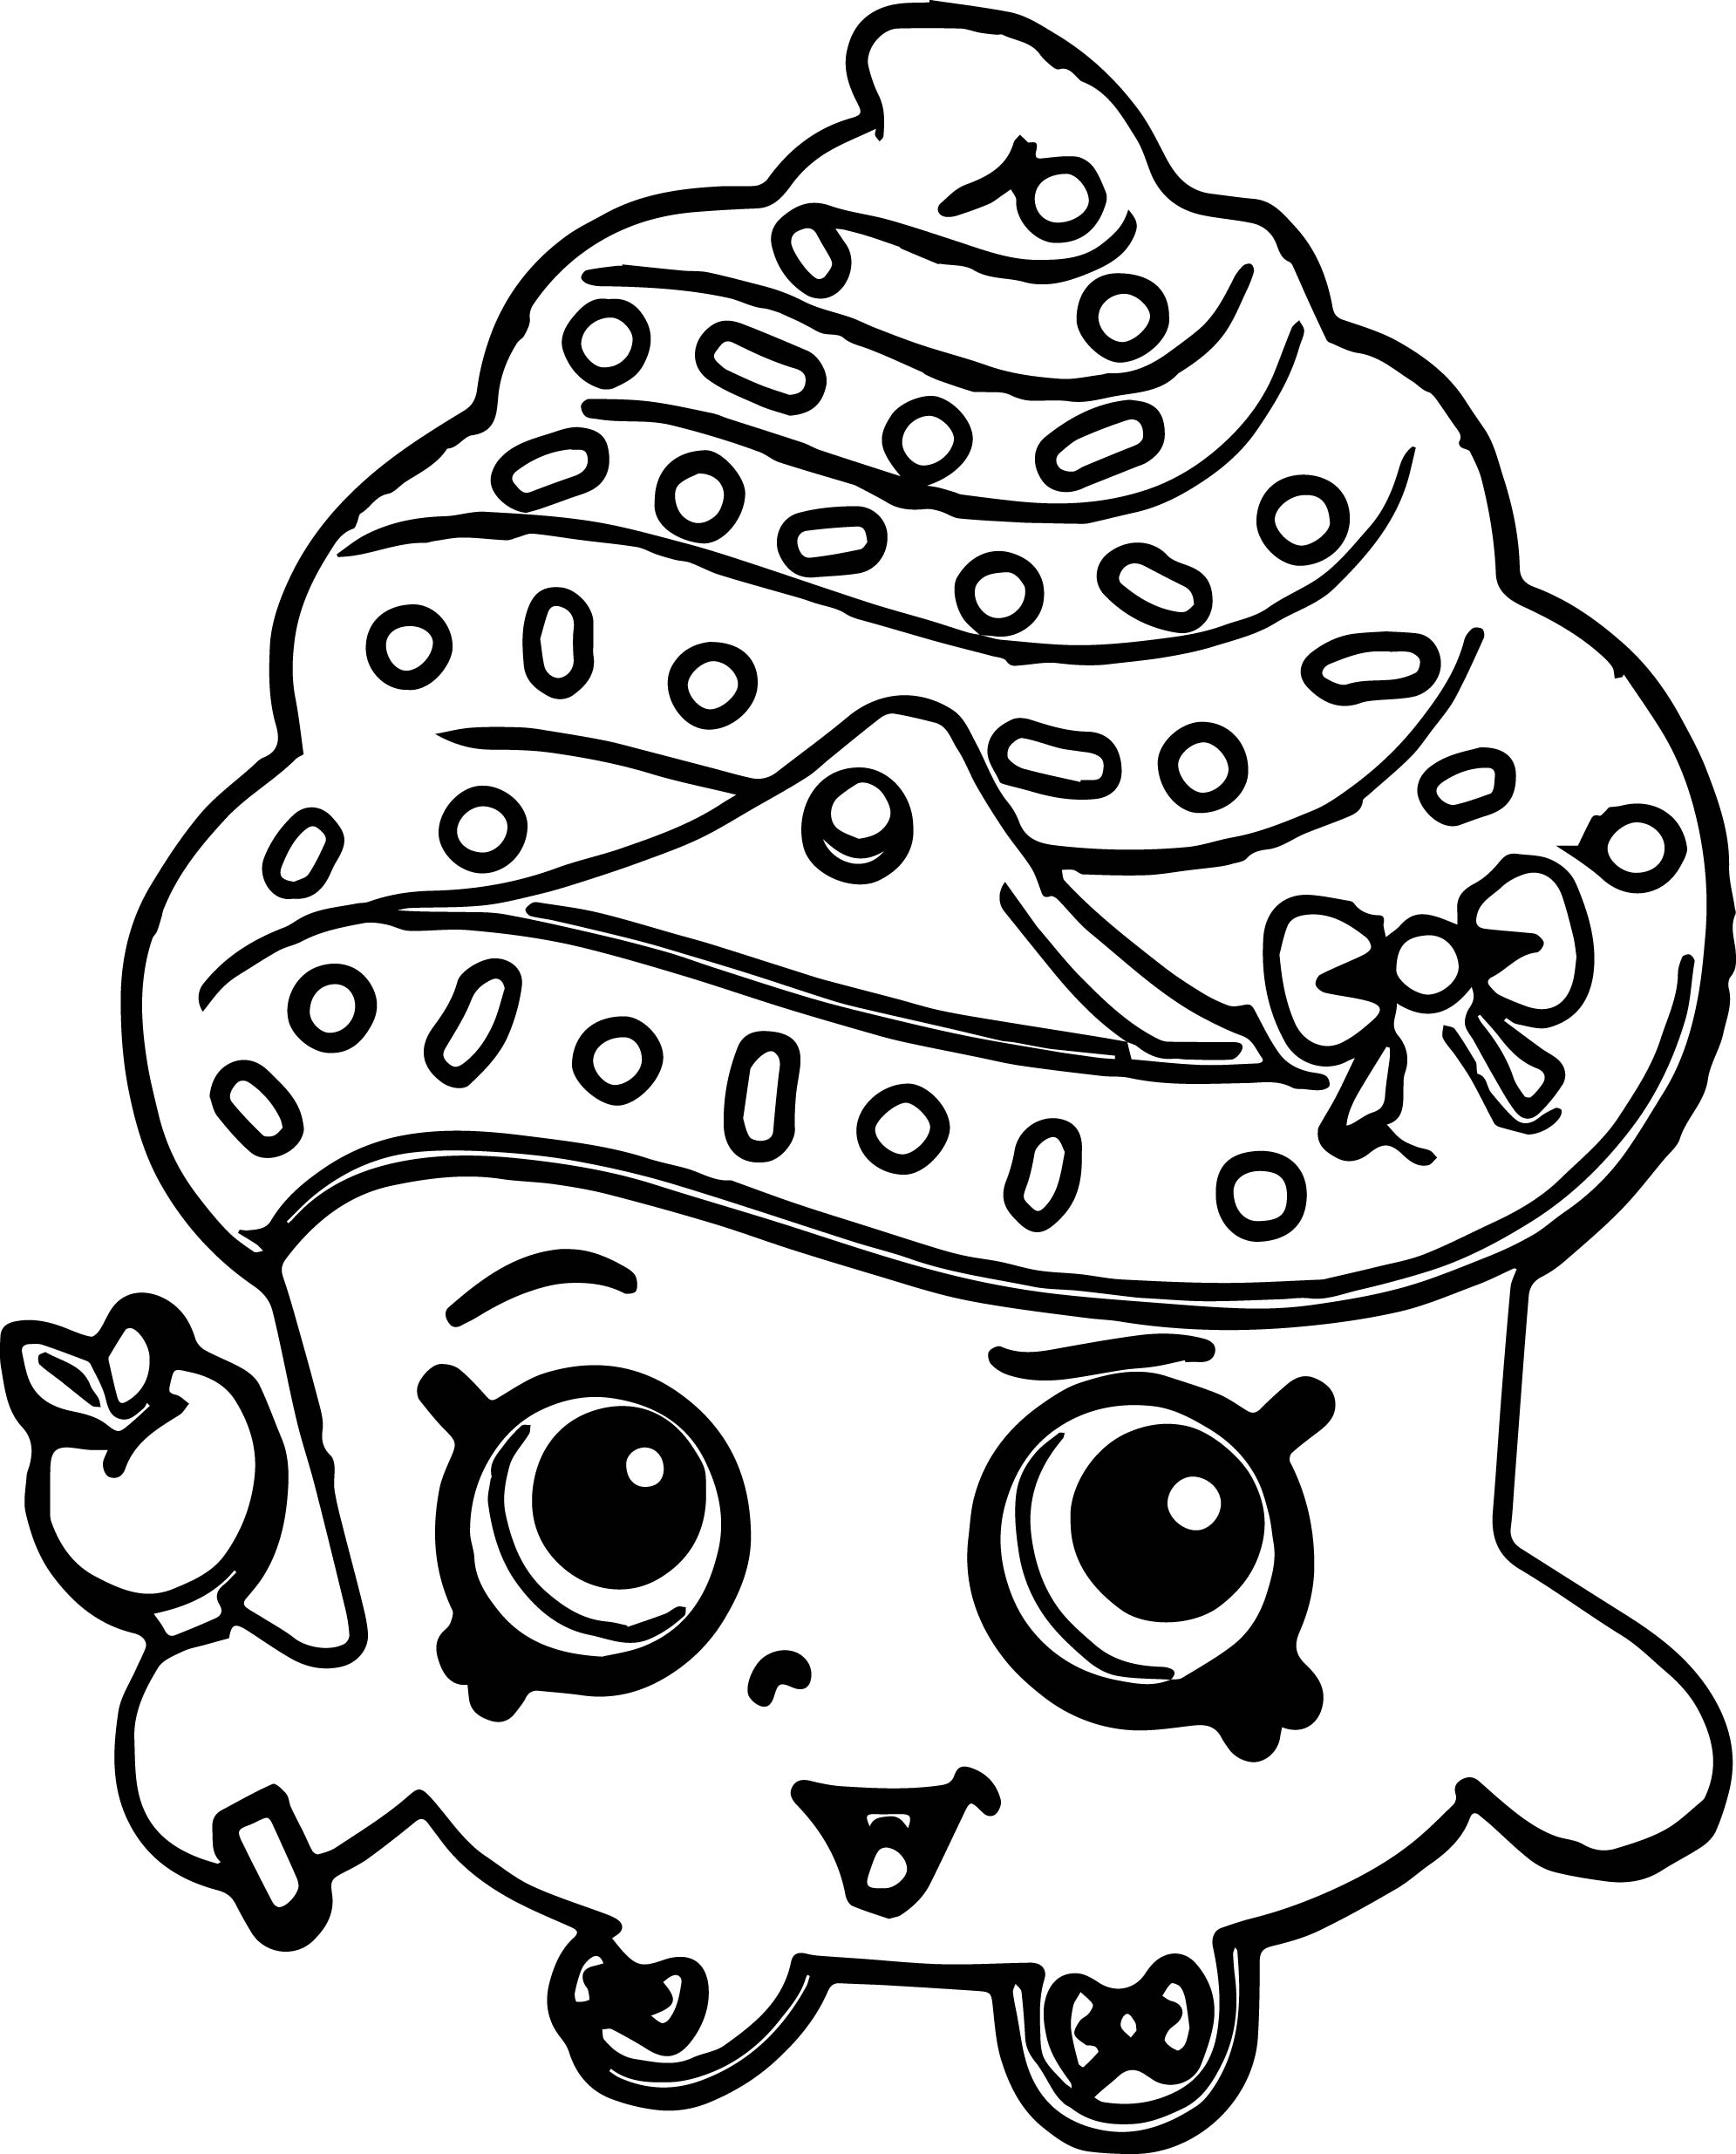 Shopkins color sheets - Shopkins Coloring Pages Big Shopkins Cute Cupcake Coloring Page